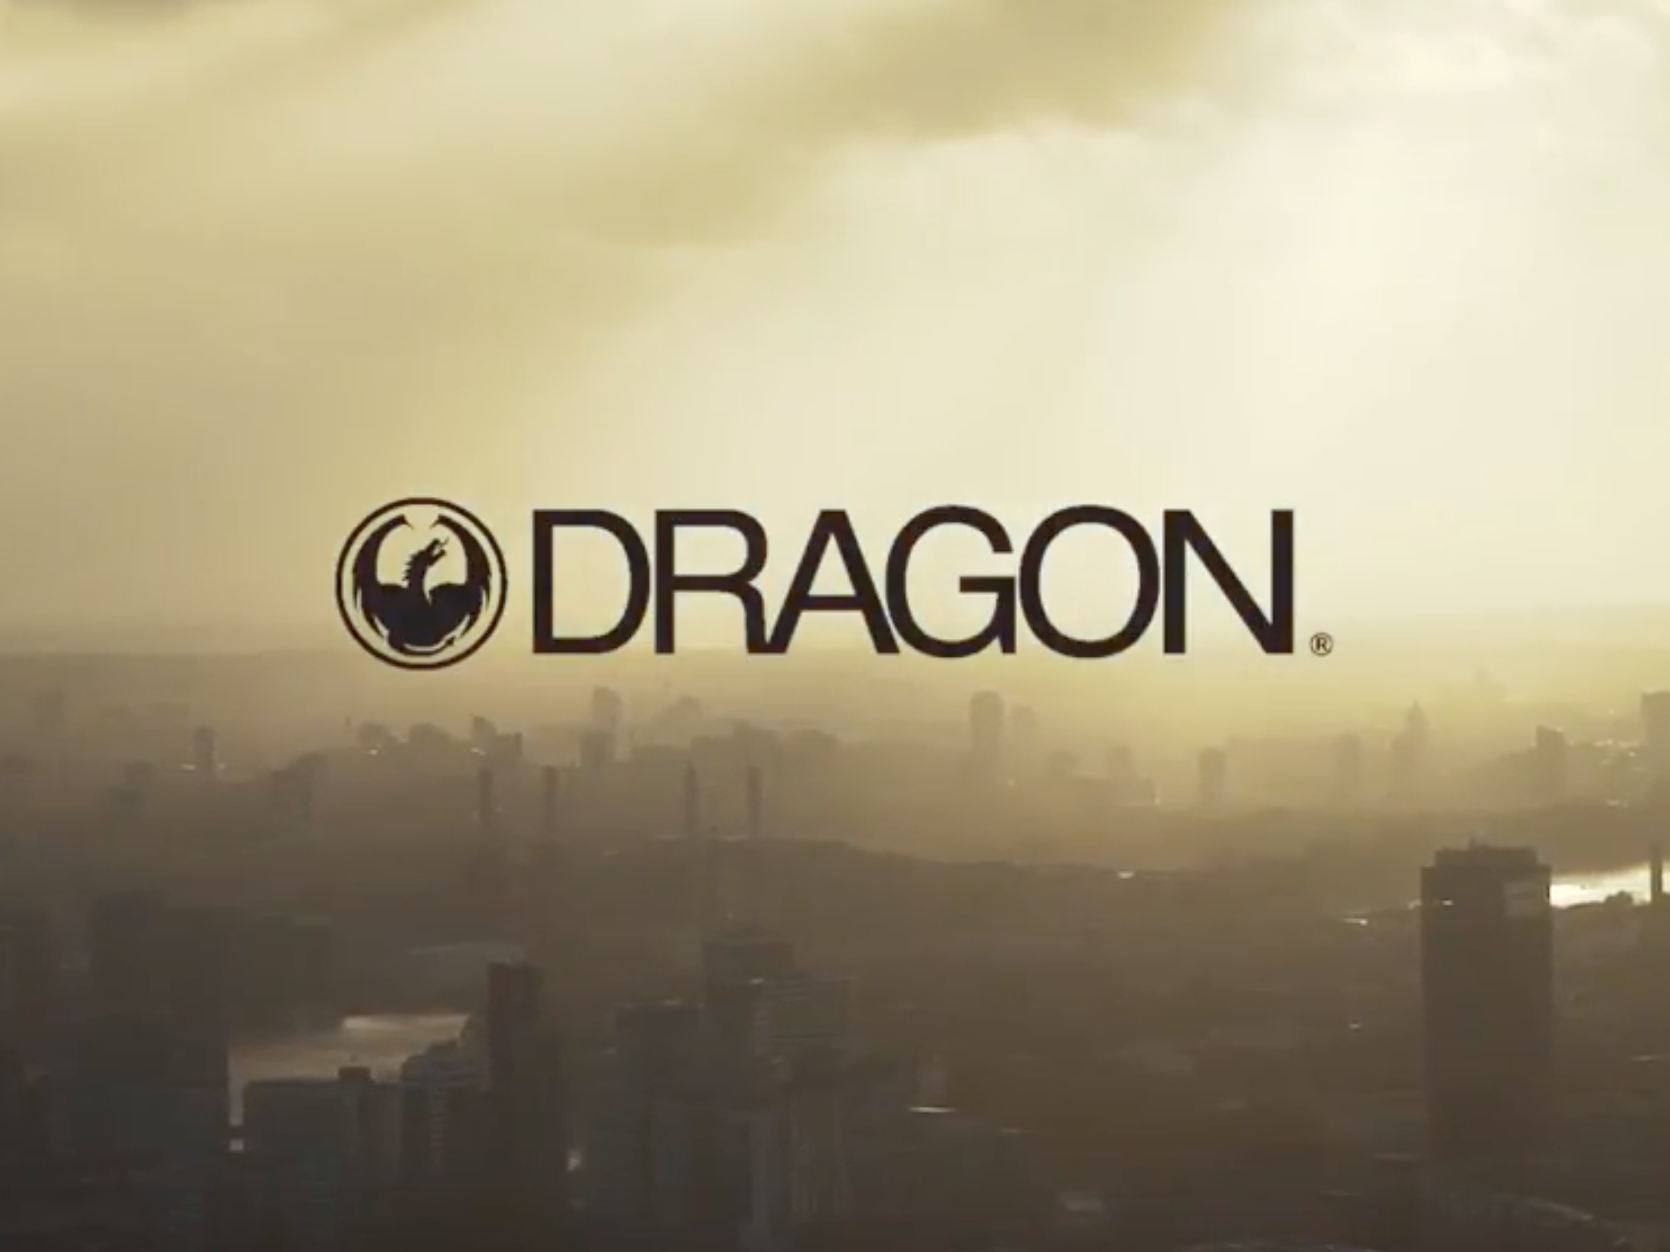 Dragon x Asymbol collaboration –official launch edit